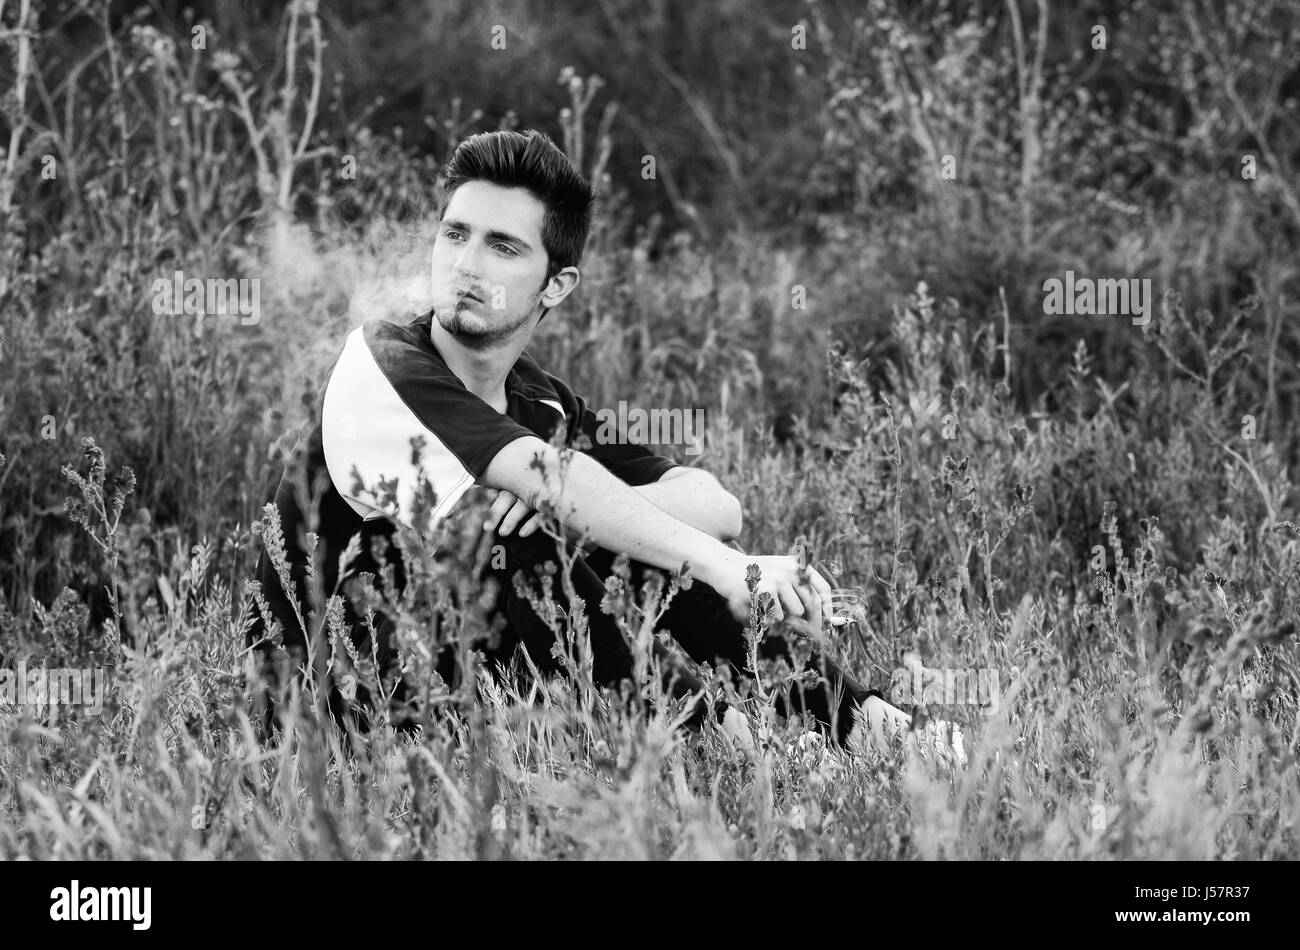 black and white portrait of lonely man smokong a cigarette in a field - Stock Image